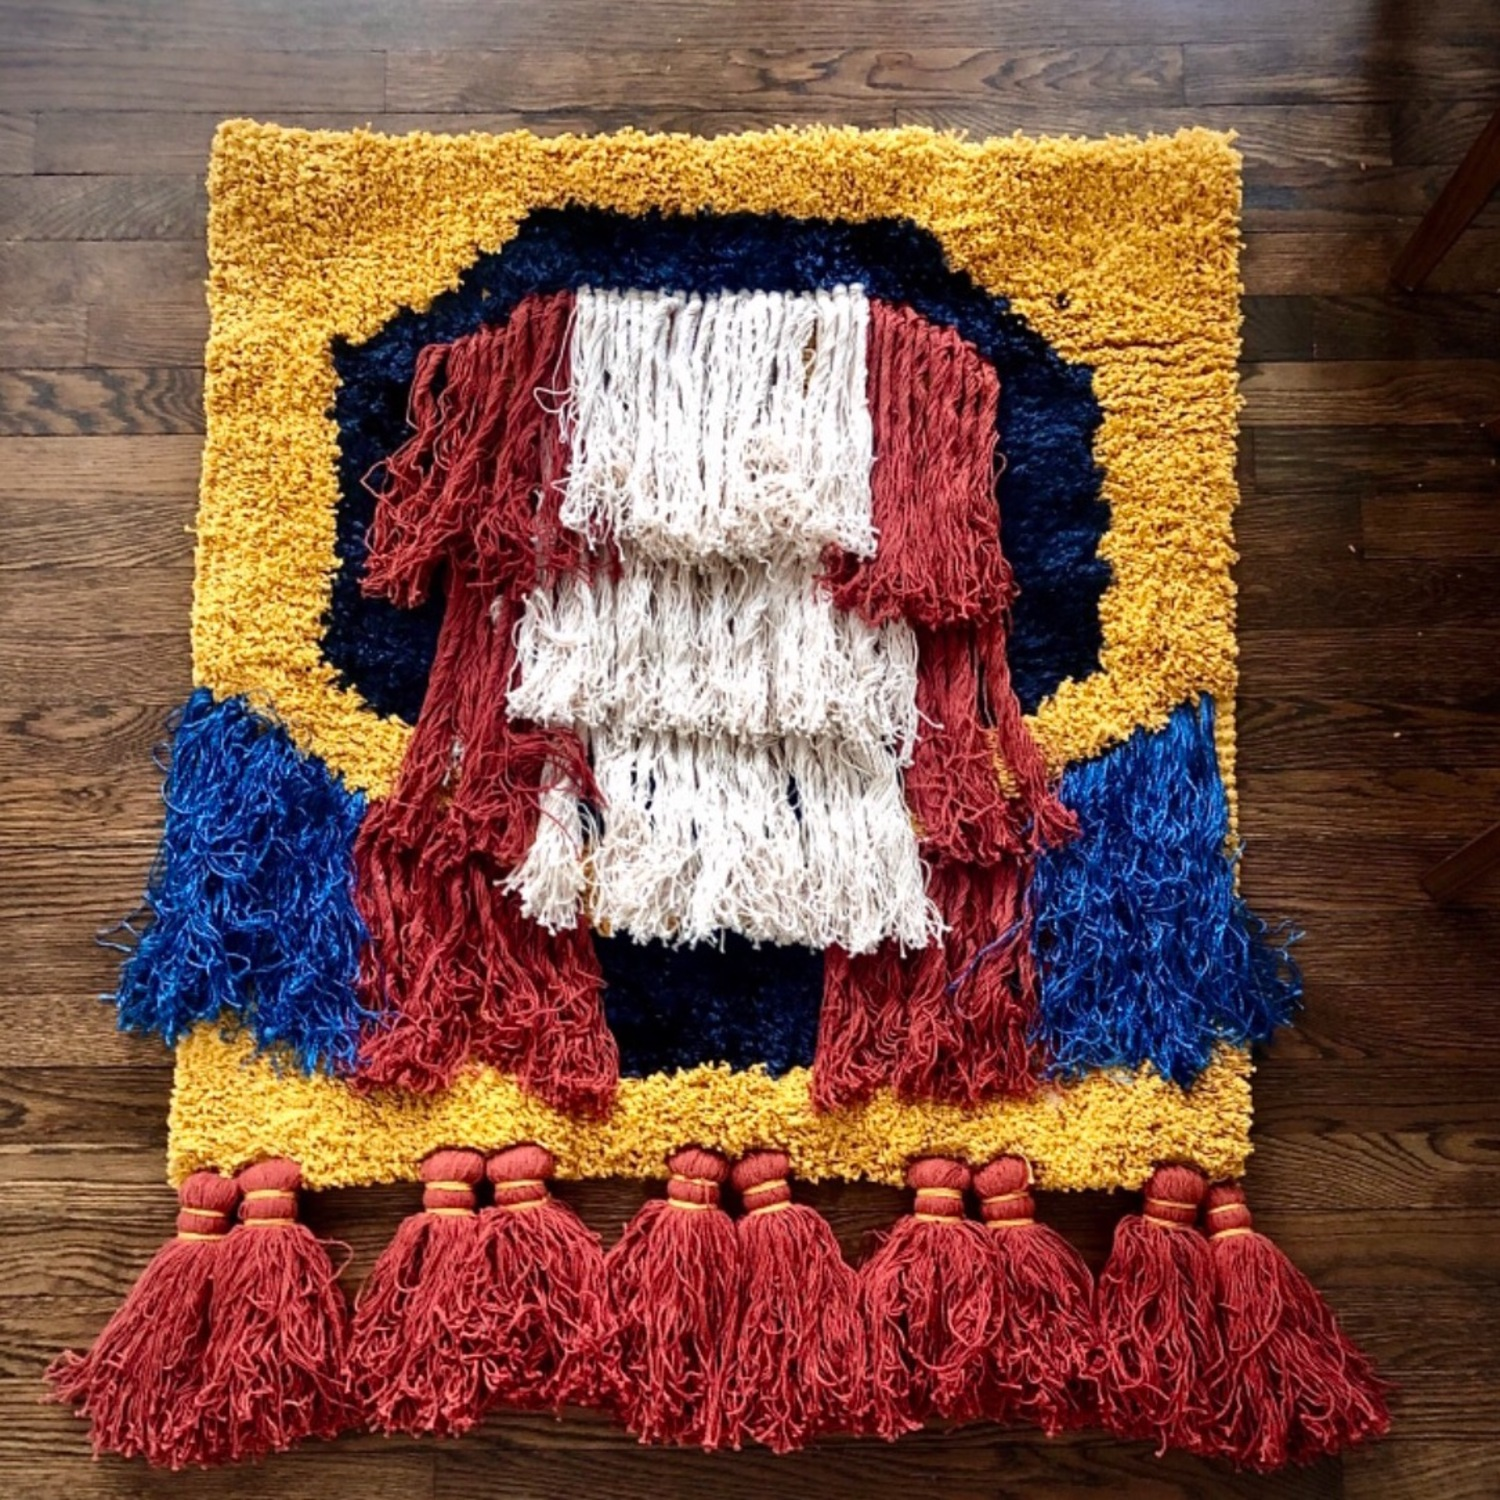 ABC Carpet and Home Woven Wall Hanging - image-2